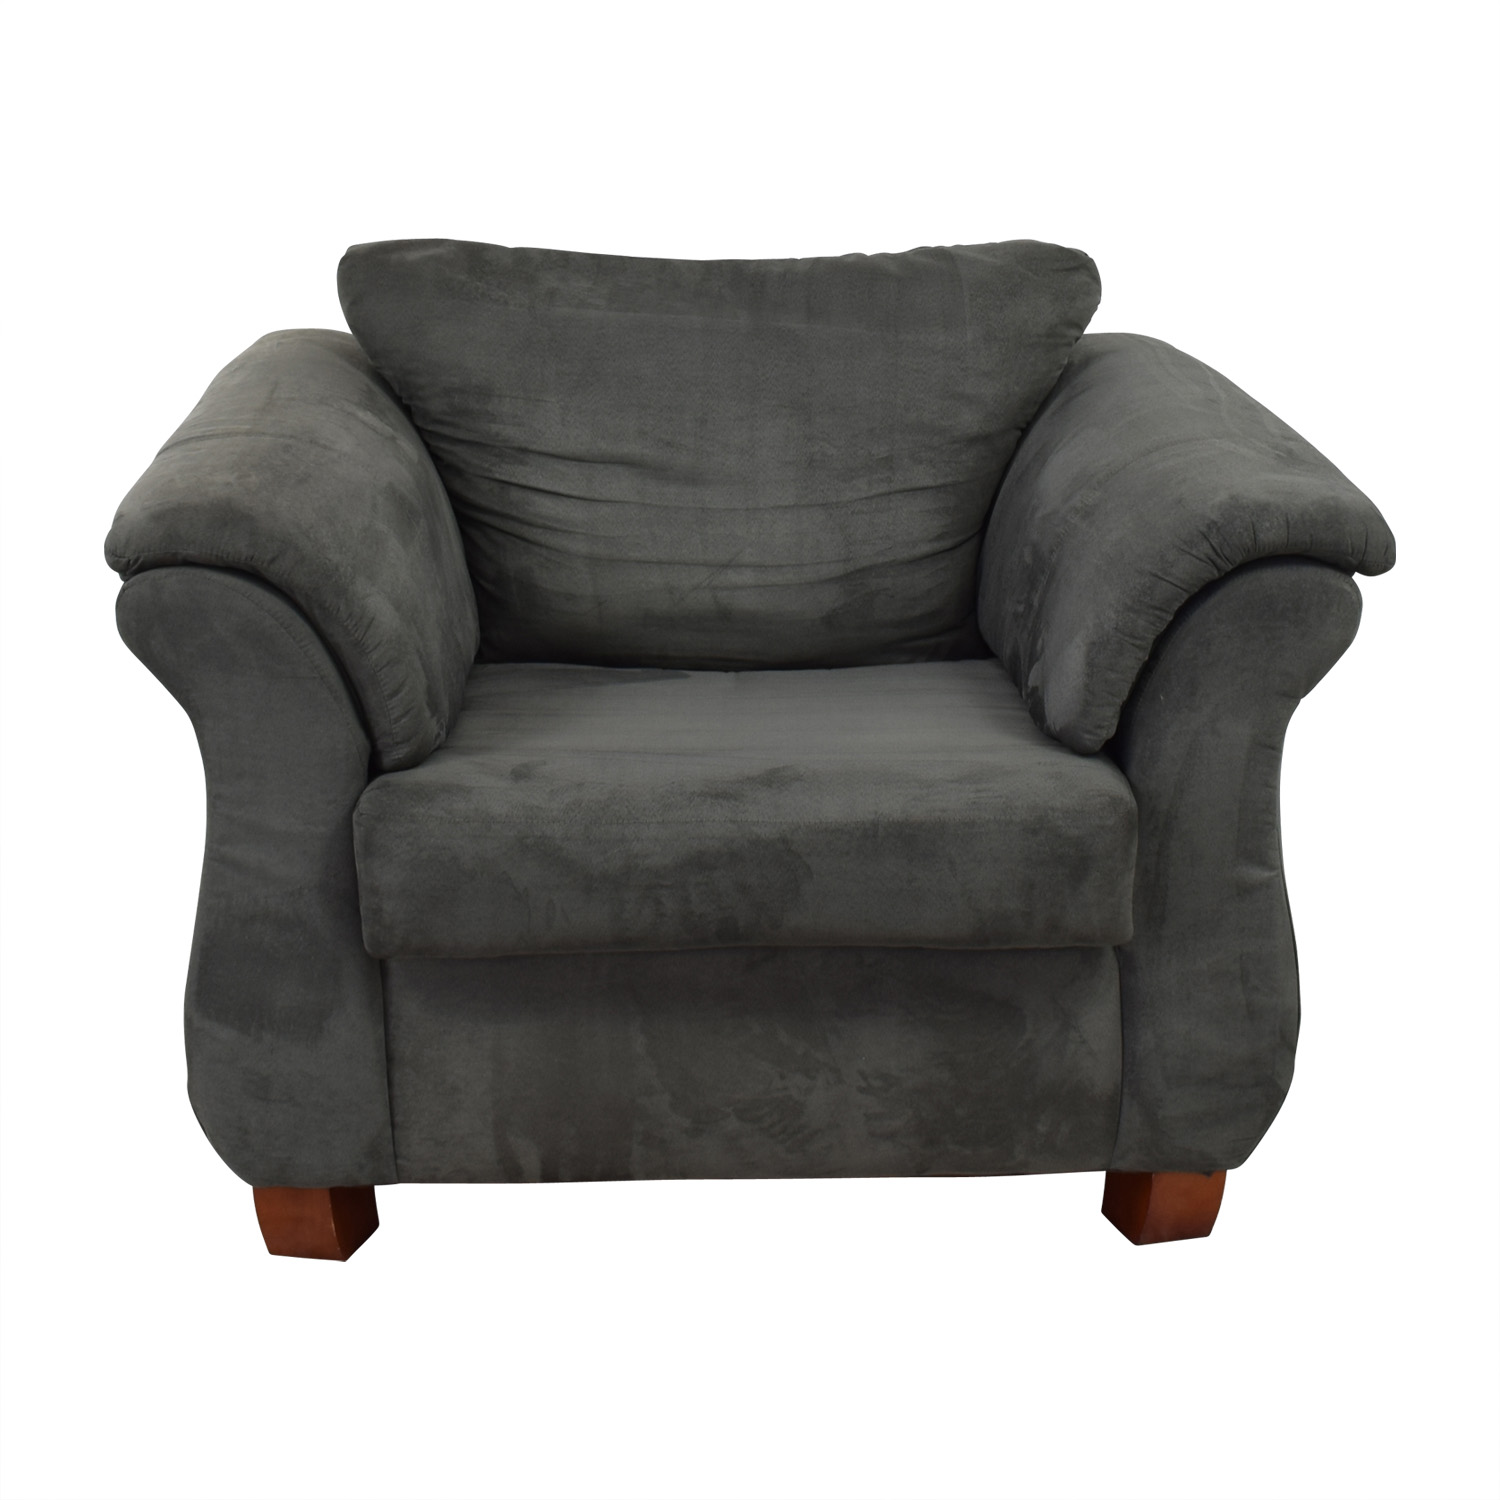 loveseat hd sofa products hyatt furniture and chair